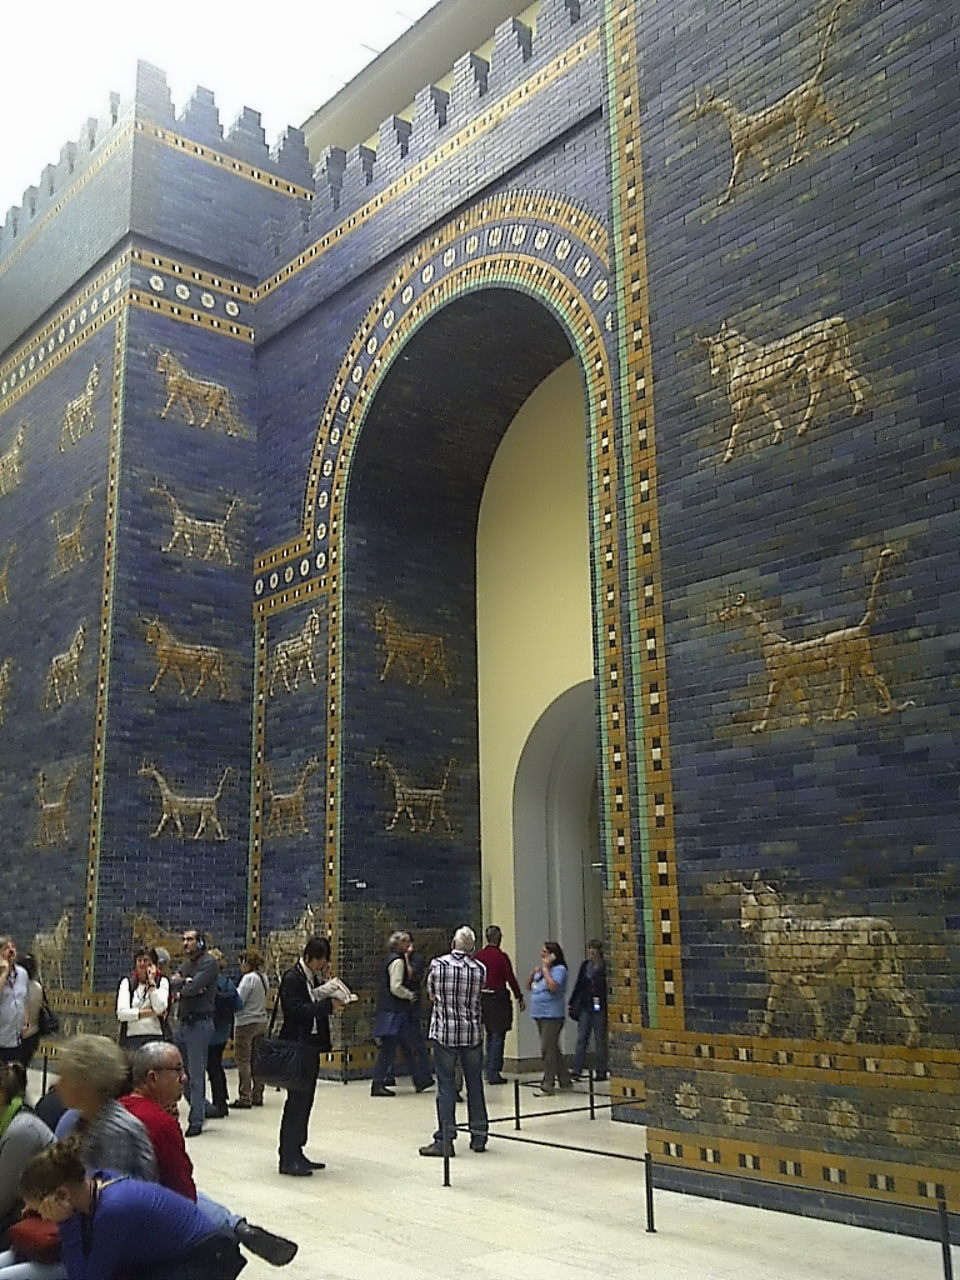 Ishtar Gate, right view